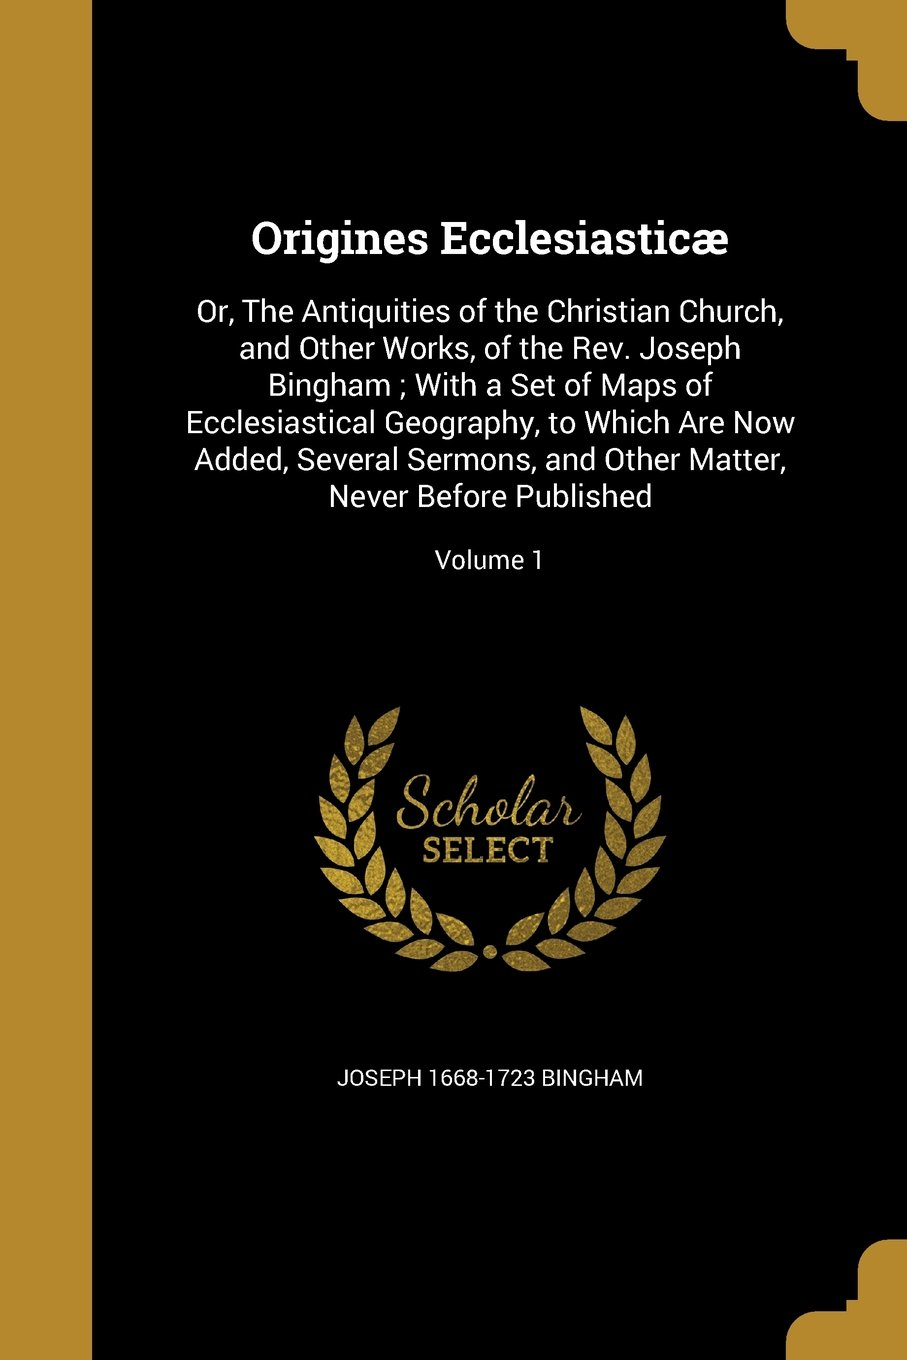 Origines Ecclesiasticae: Or, the Antiquities of the Christian Church, and Other Works, of the REV. Joseph Bingham; With a Set of Maps of ... Matter, Never Before Published; Volume 1 pdf epub